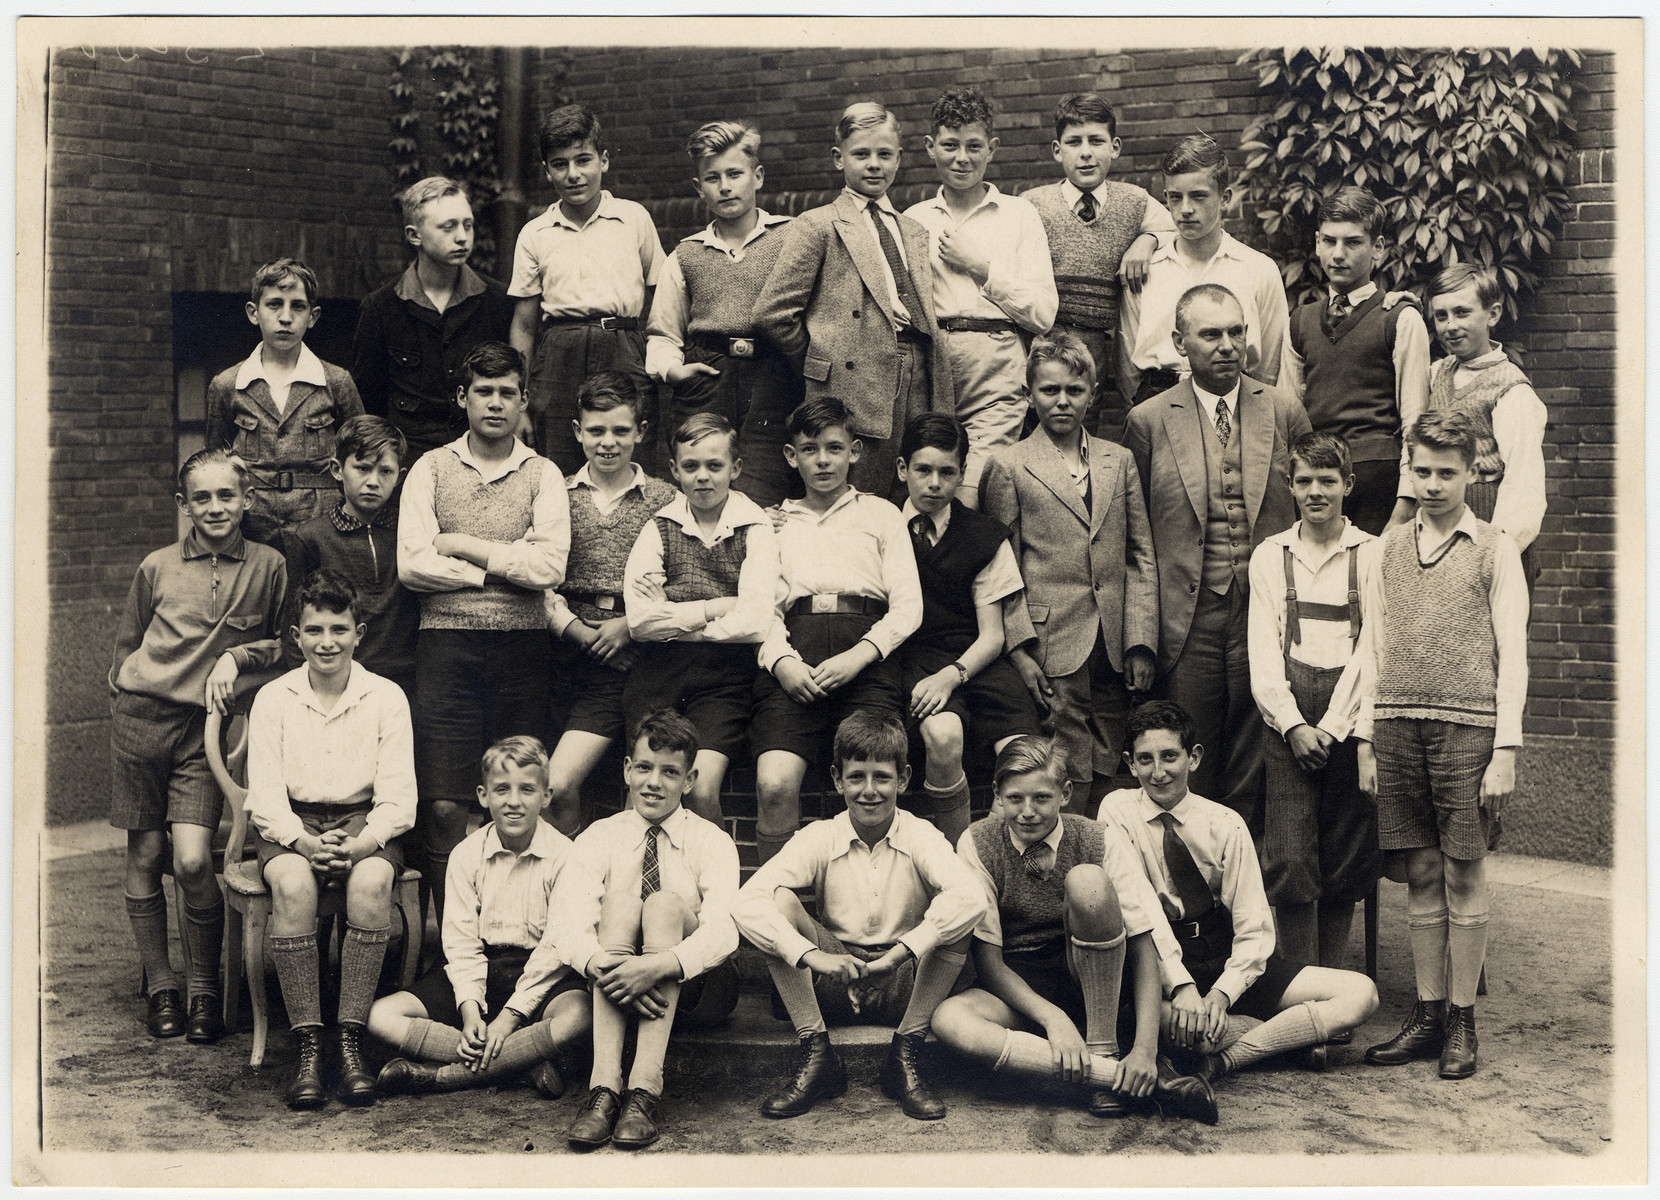 Portrait of a boy's class in Hamburg, Germany with both German and Jewish students.  Among those pictured is Werner John Bing.